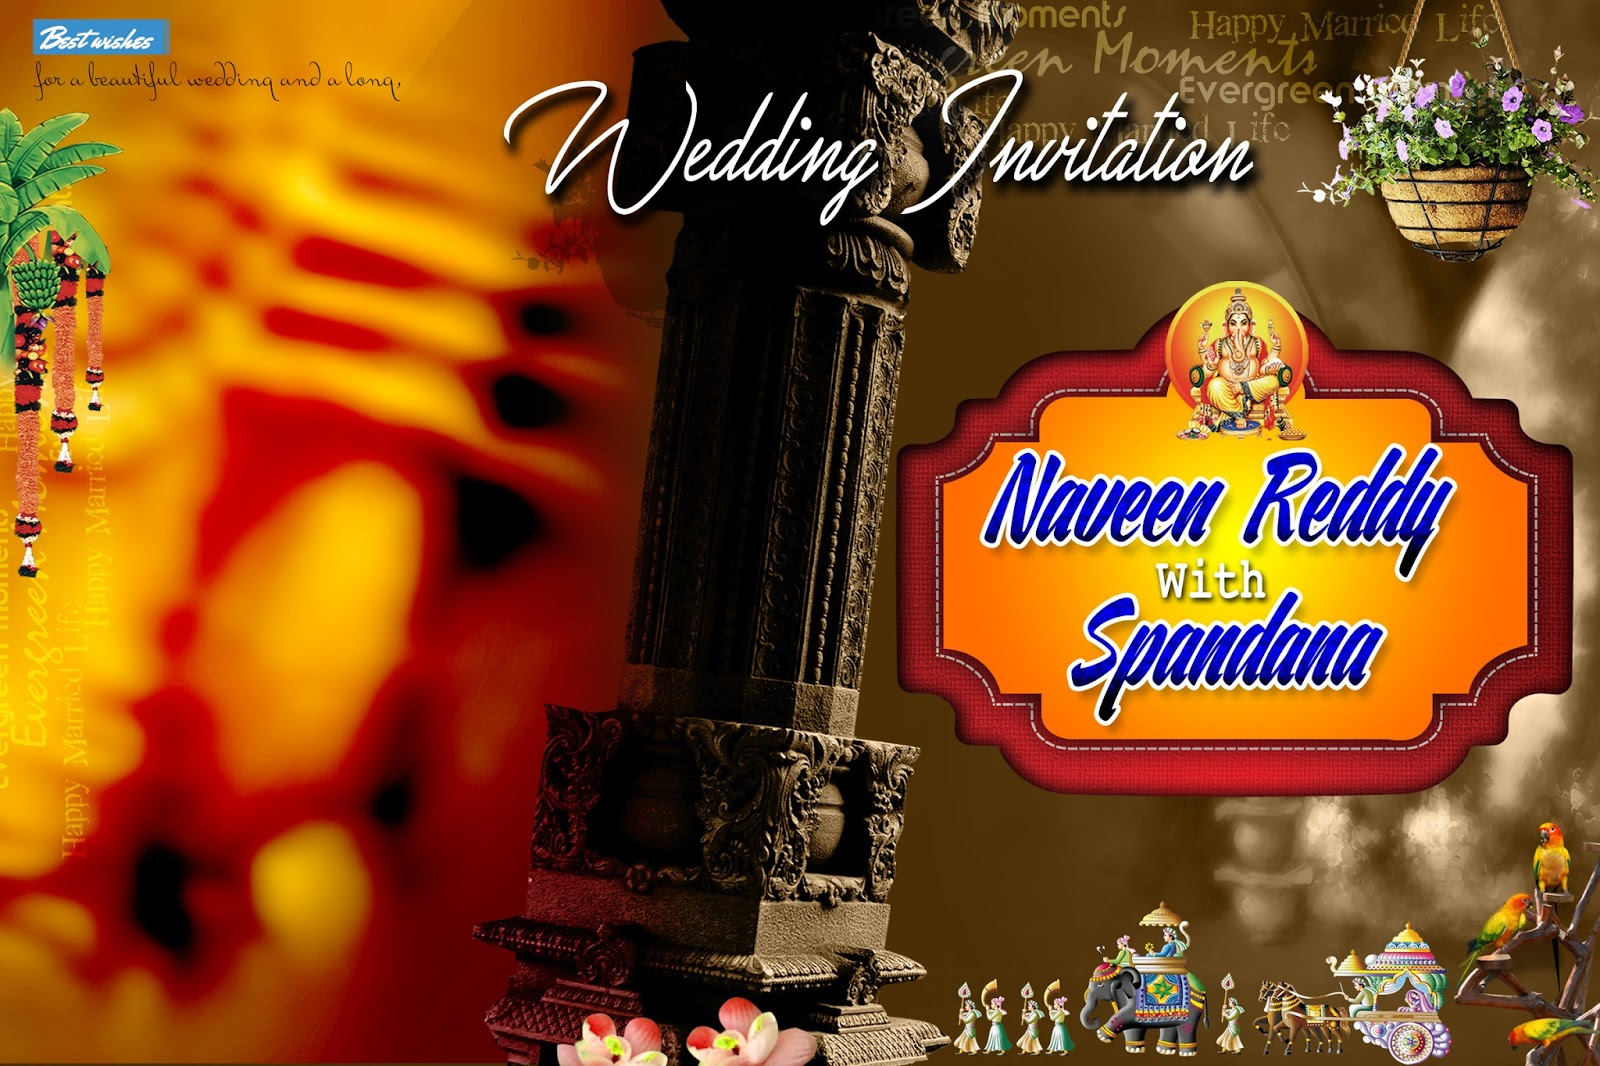 indian wedding flex banner psd vector template free download naveengfx indian wedding flex banner psd vector